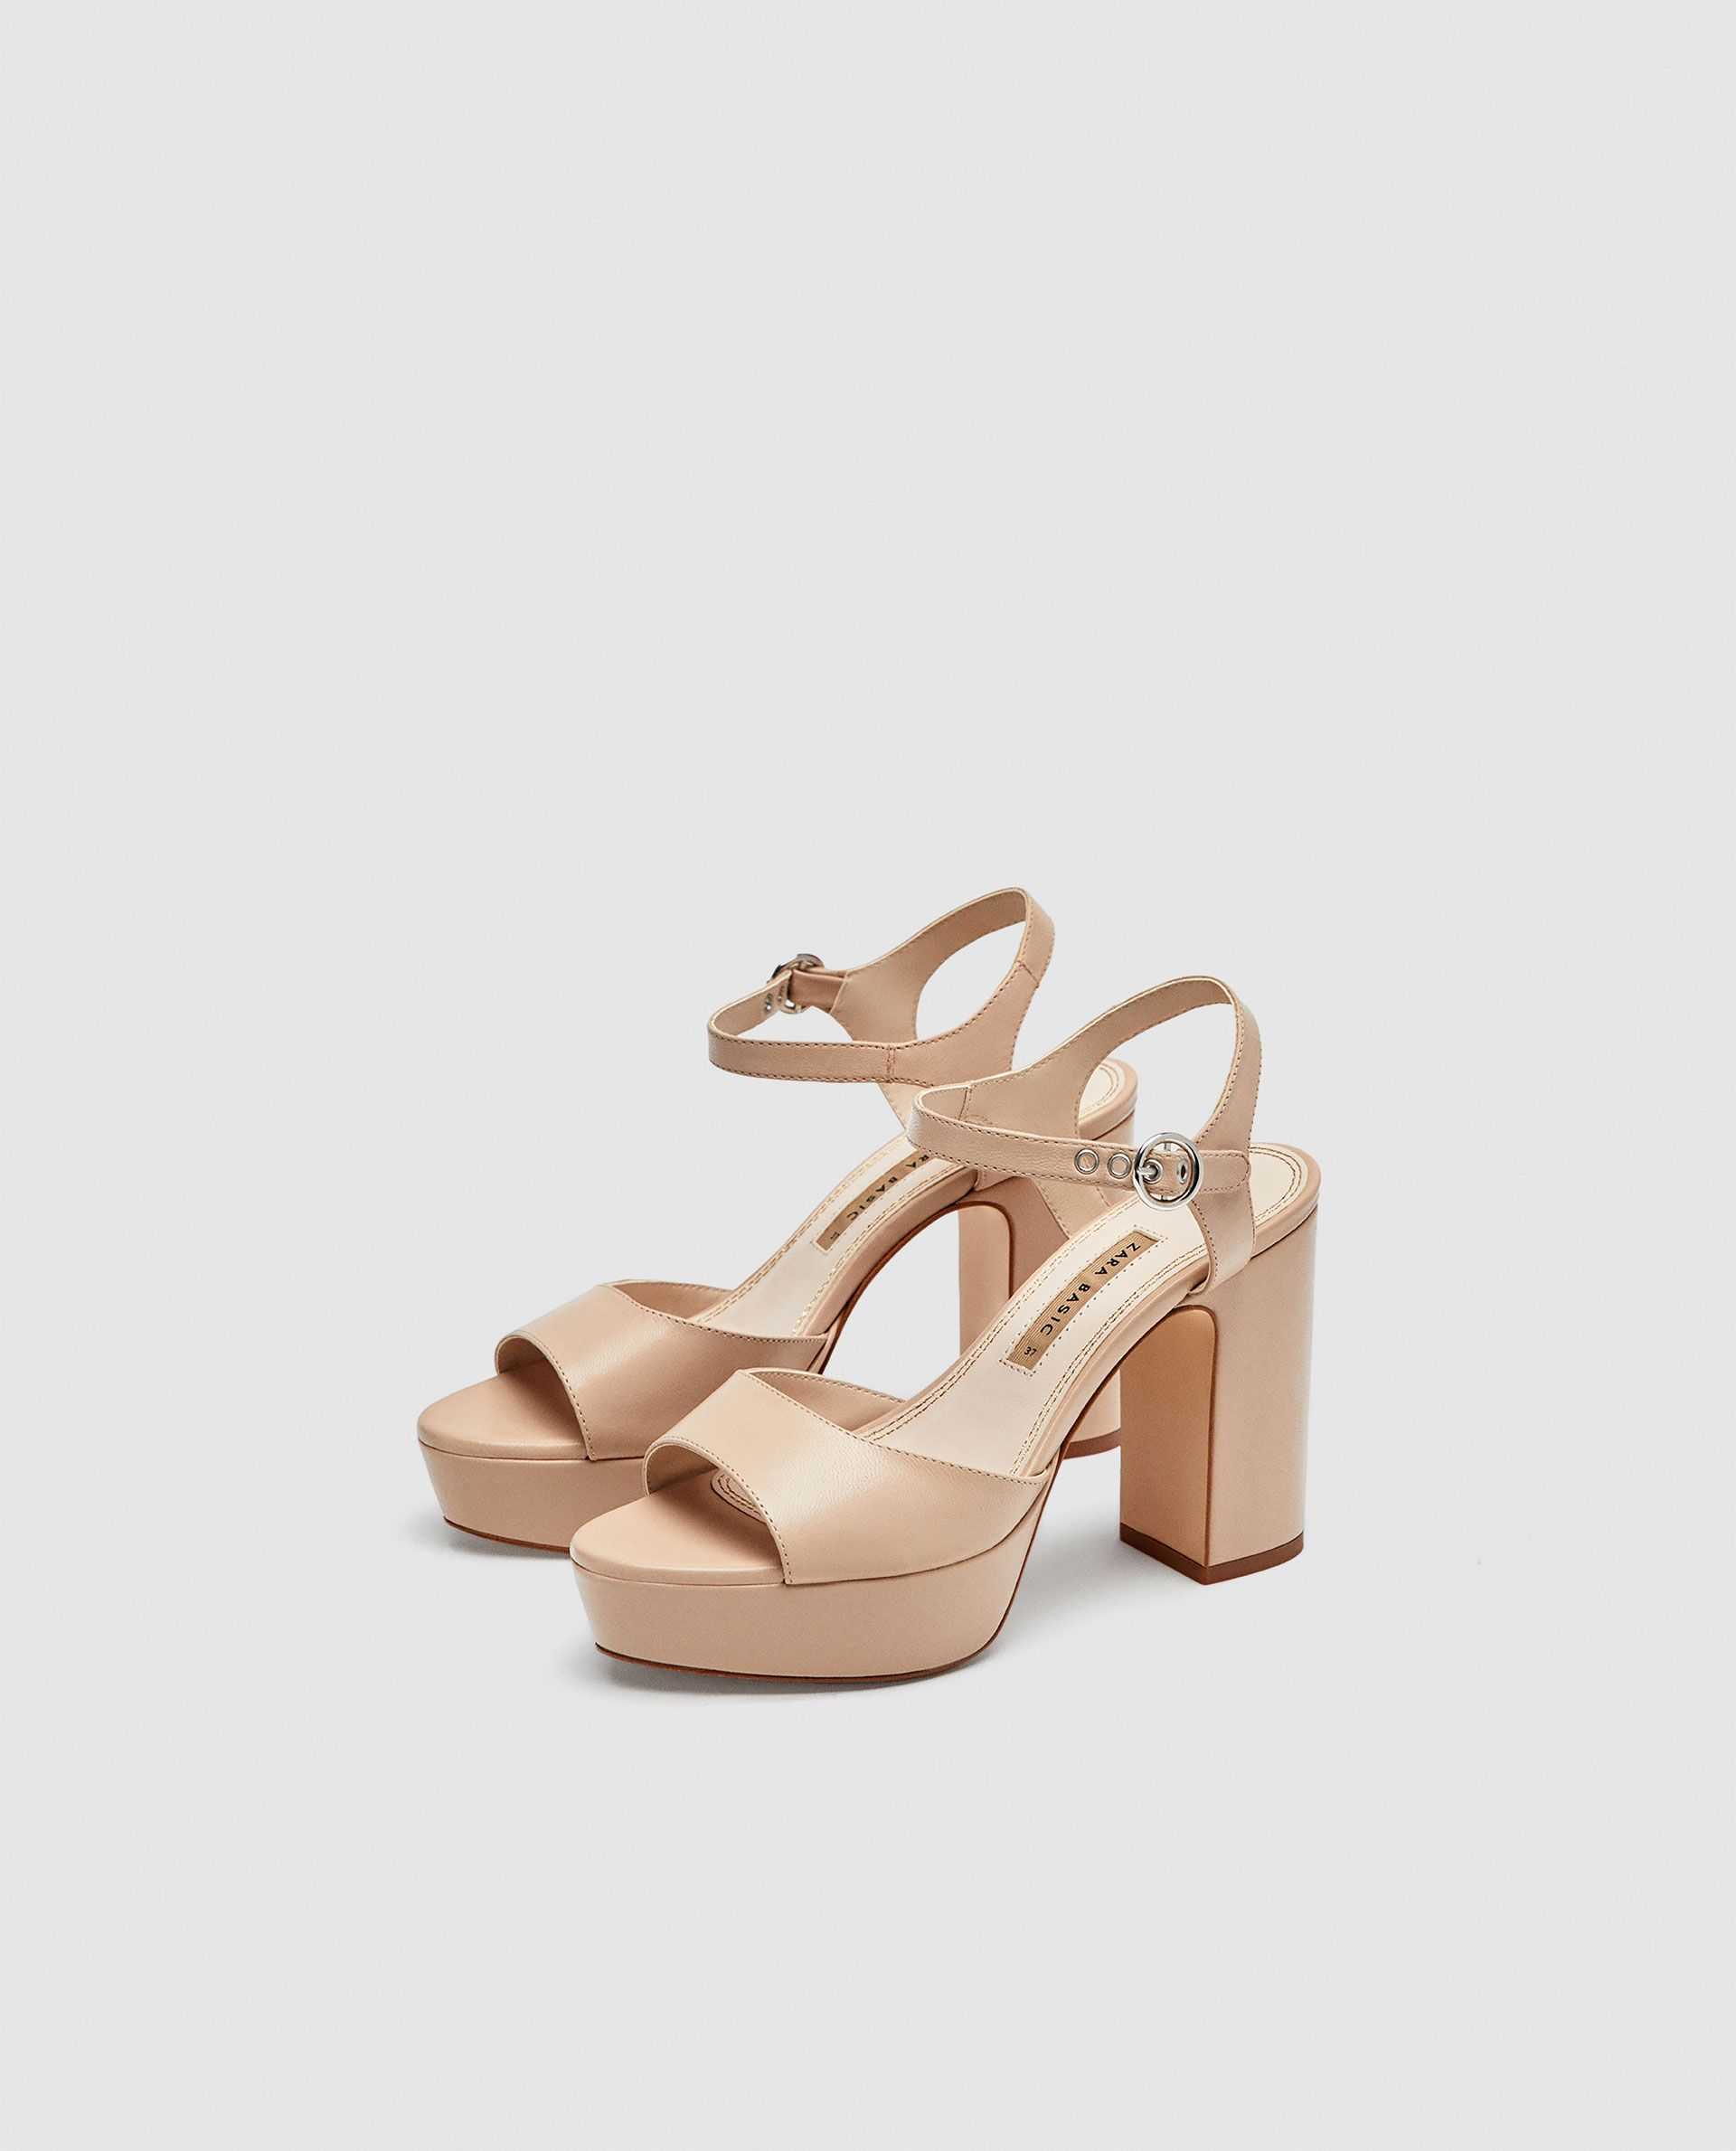 ea4fb00280a ZARA - AW 18 - LEATHER PLATFORM HIGH-HEEL SANDALS